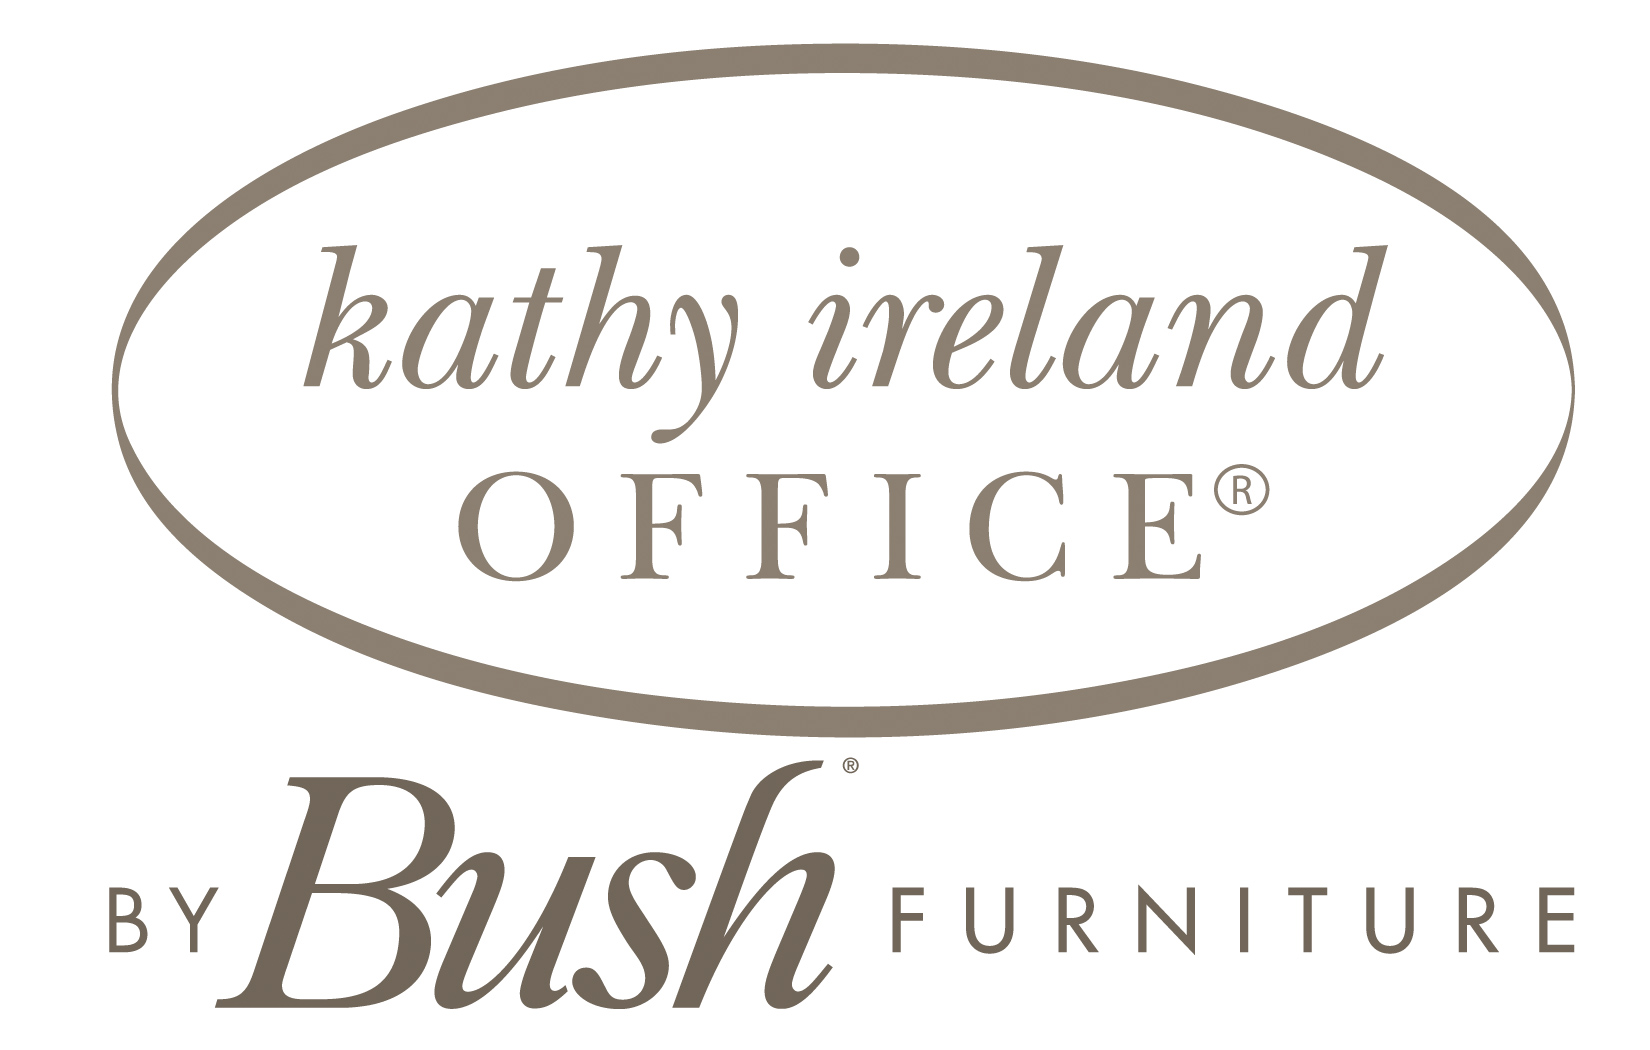 Kathy Ireland By Bush